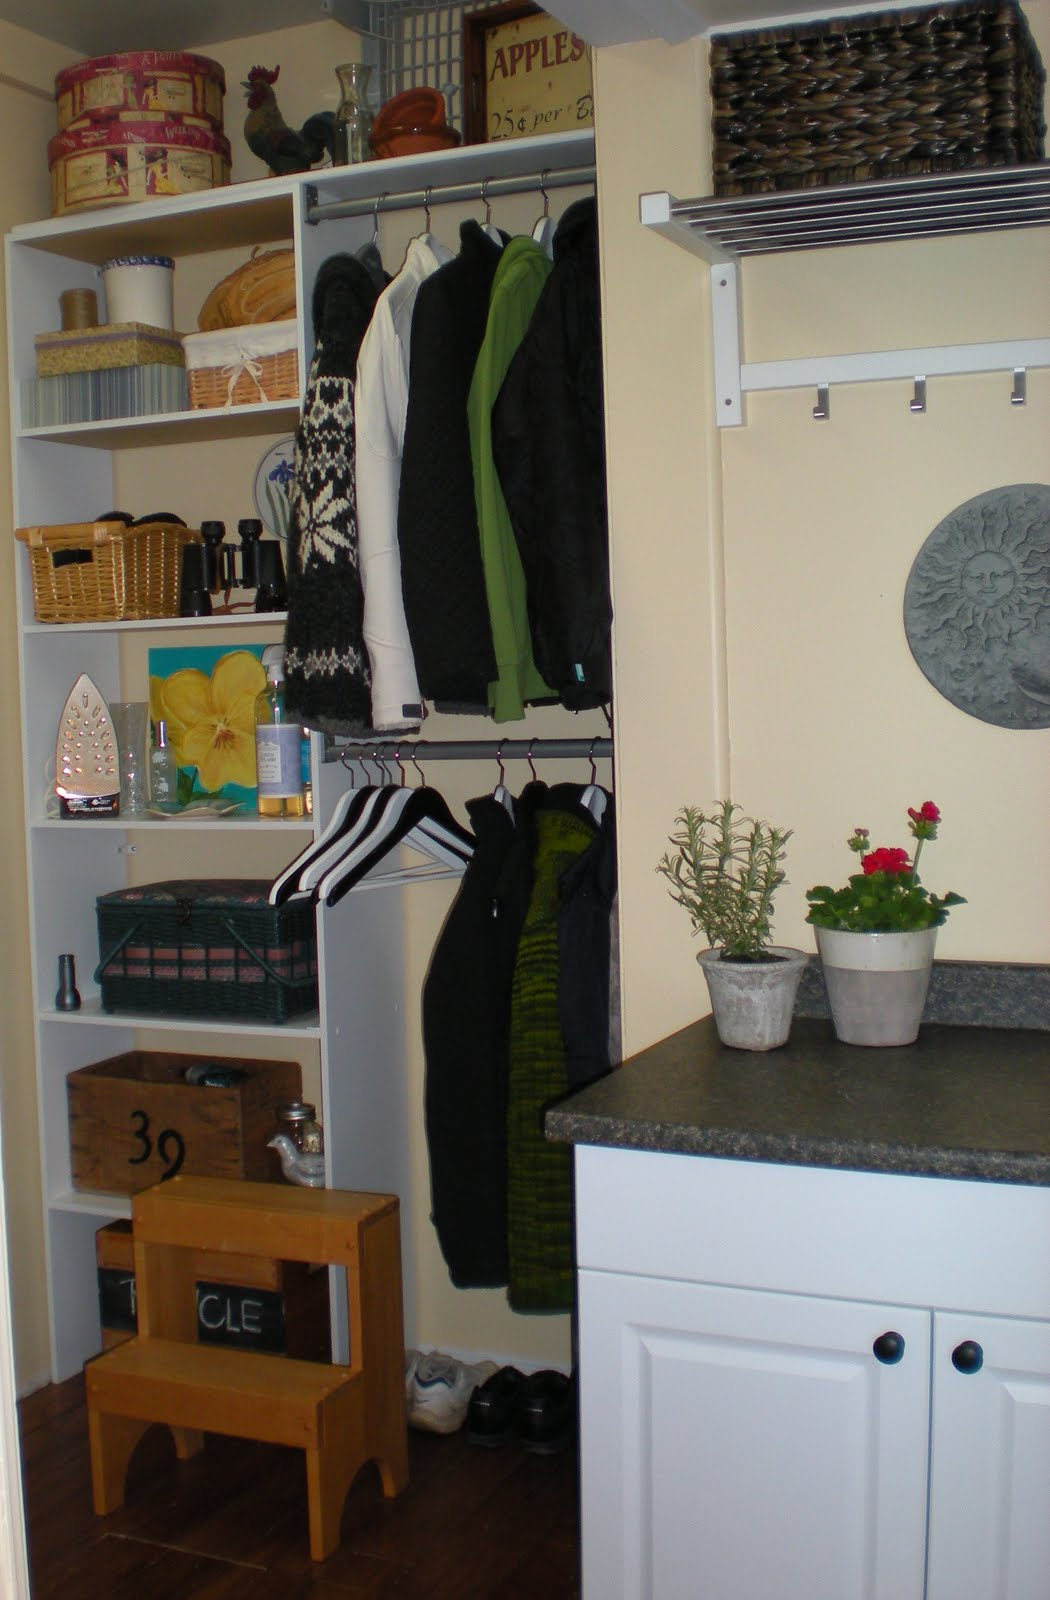 Designdreams by anne laundry storage solutions my Storage solutions for small laundry rooms